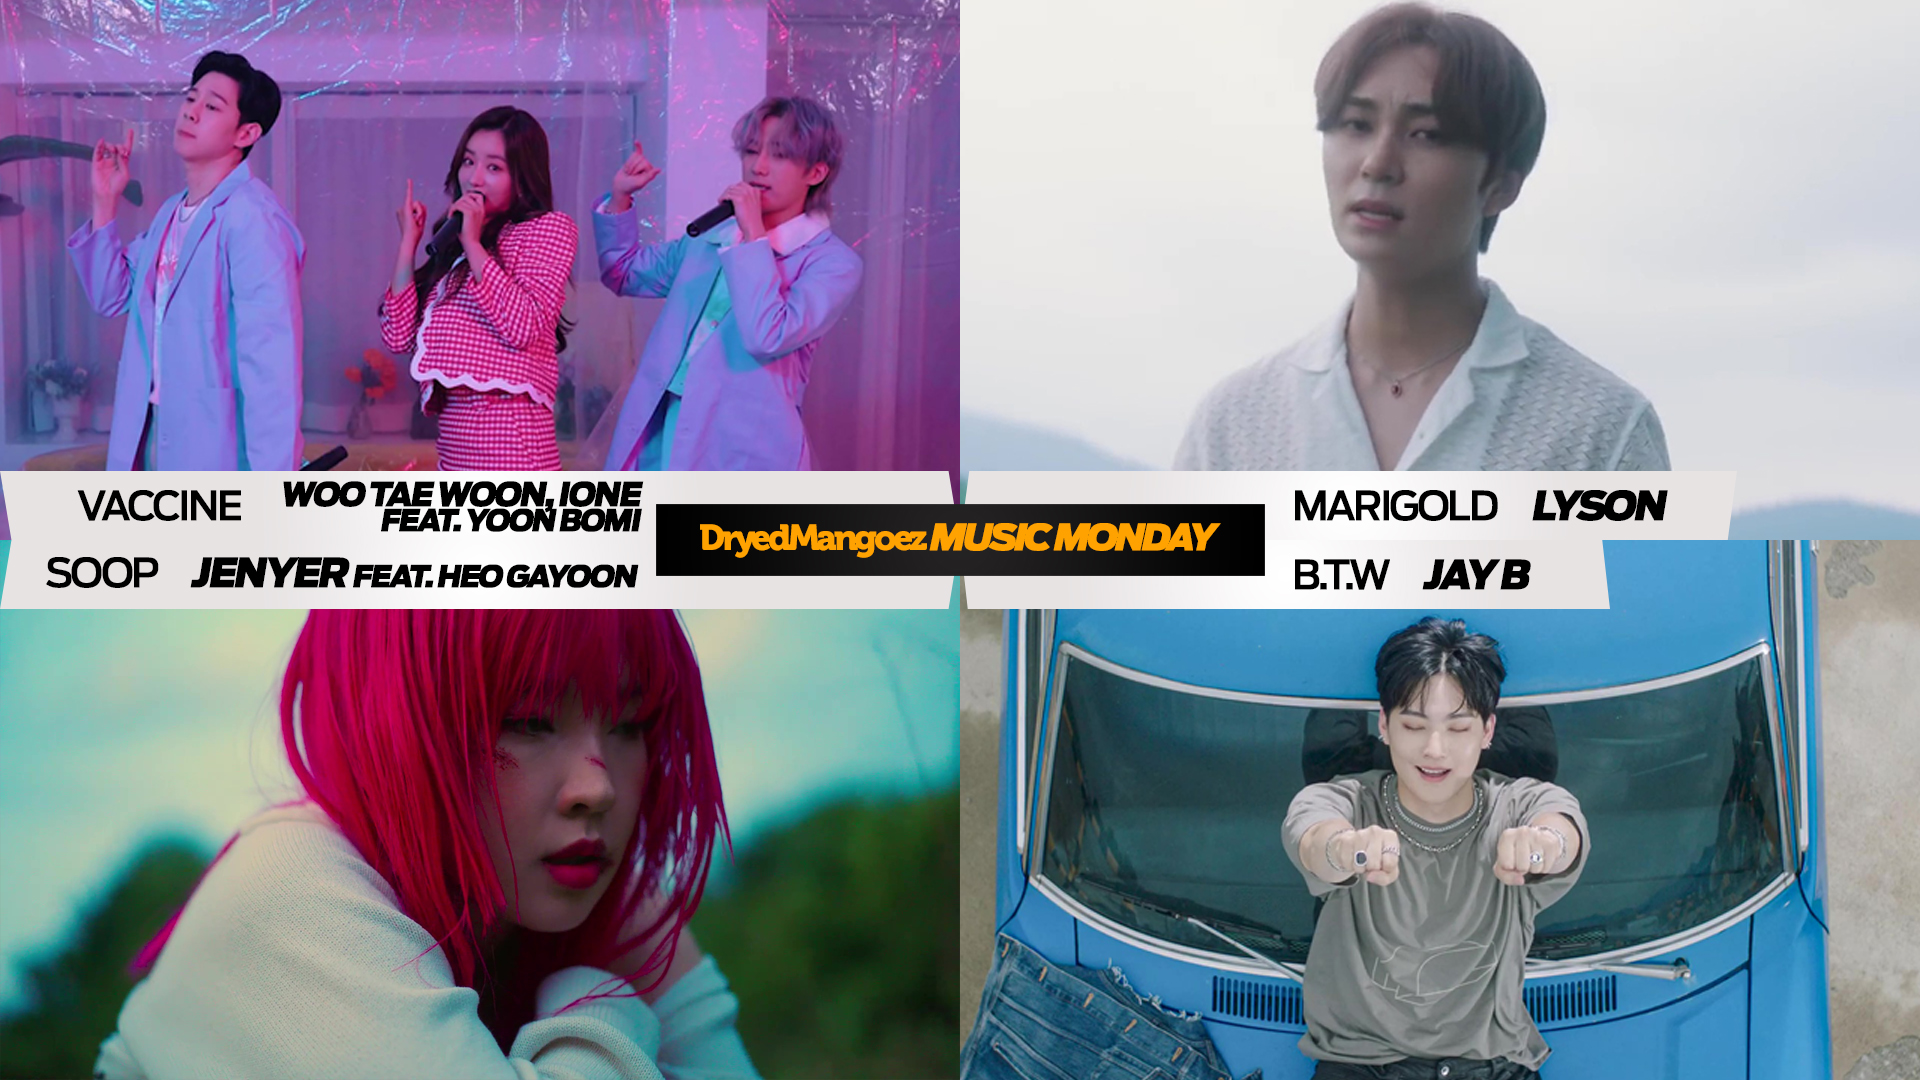 Music Monday, August 30, 2021 (Part 2) – Woo Tae Woon, IONE feat. Yoon Bomi, Lyson, Jenyer feat. Heo Gayoon, Jay B